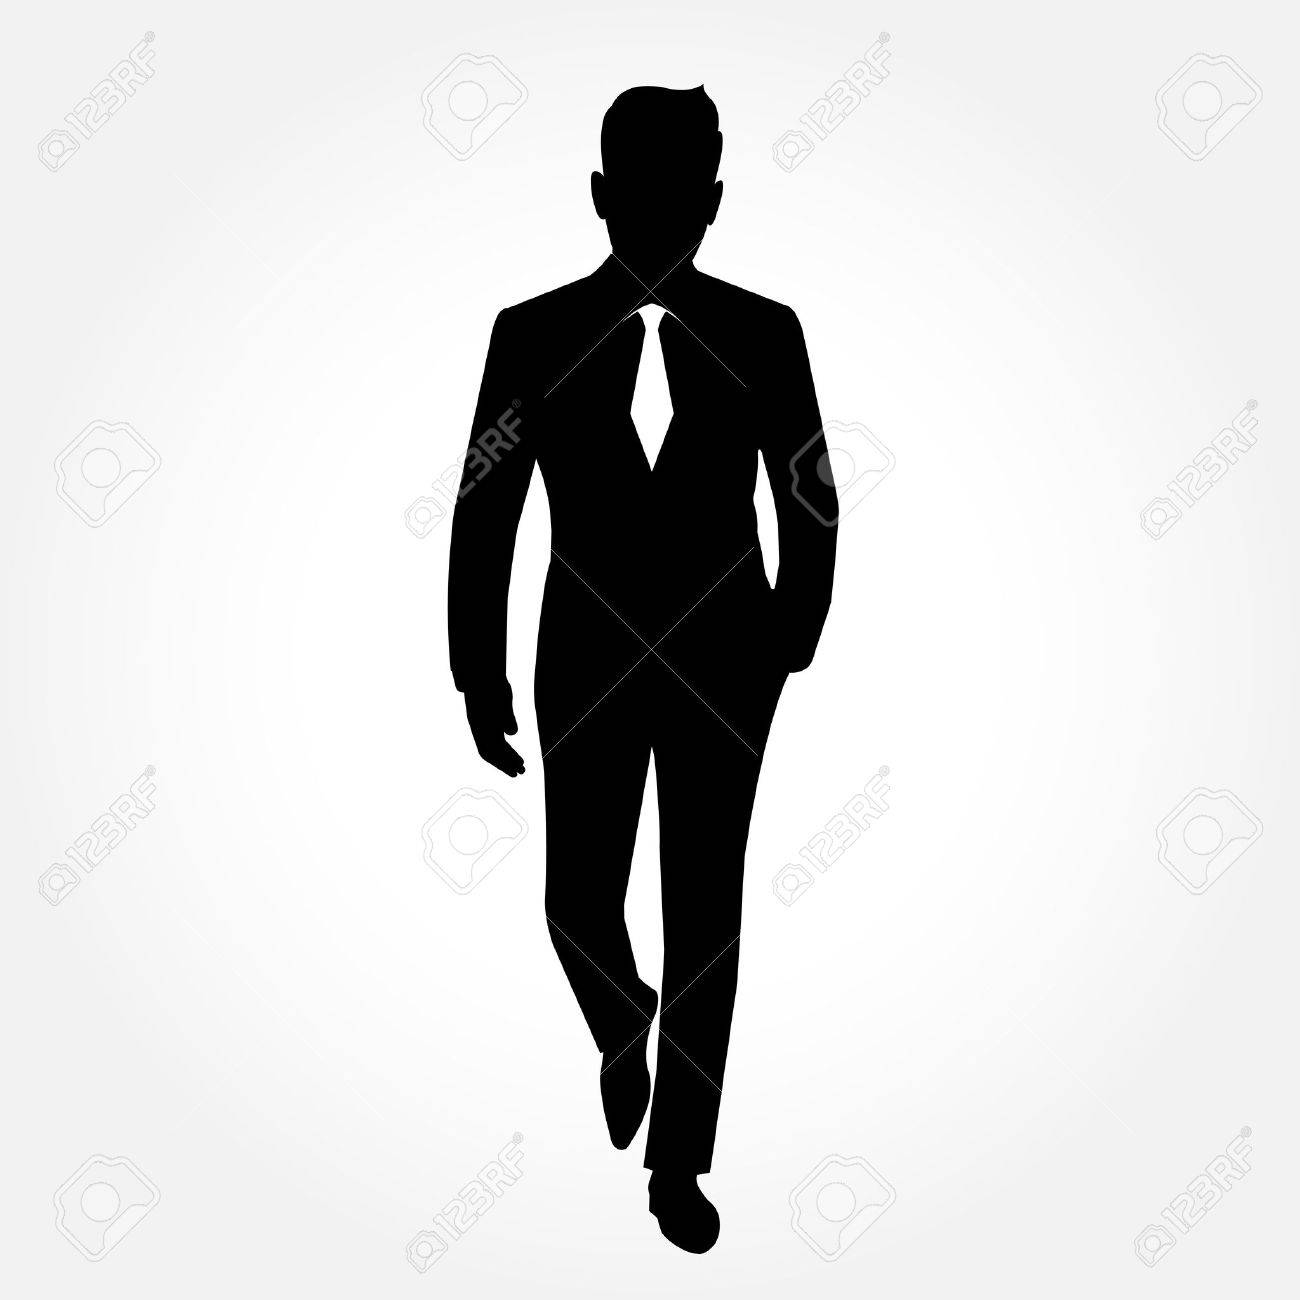 businessman silhouette full body picture with necktie on royalty